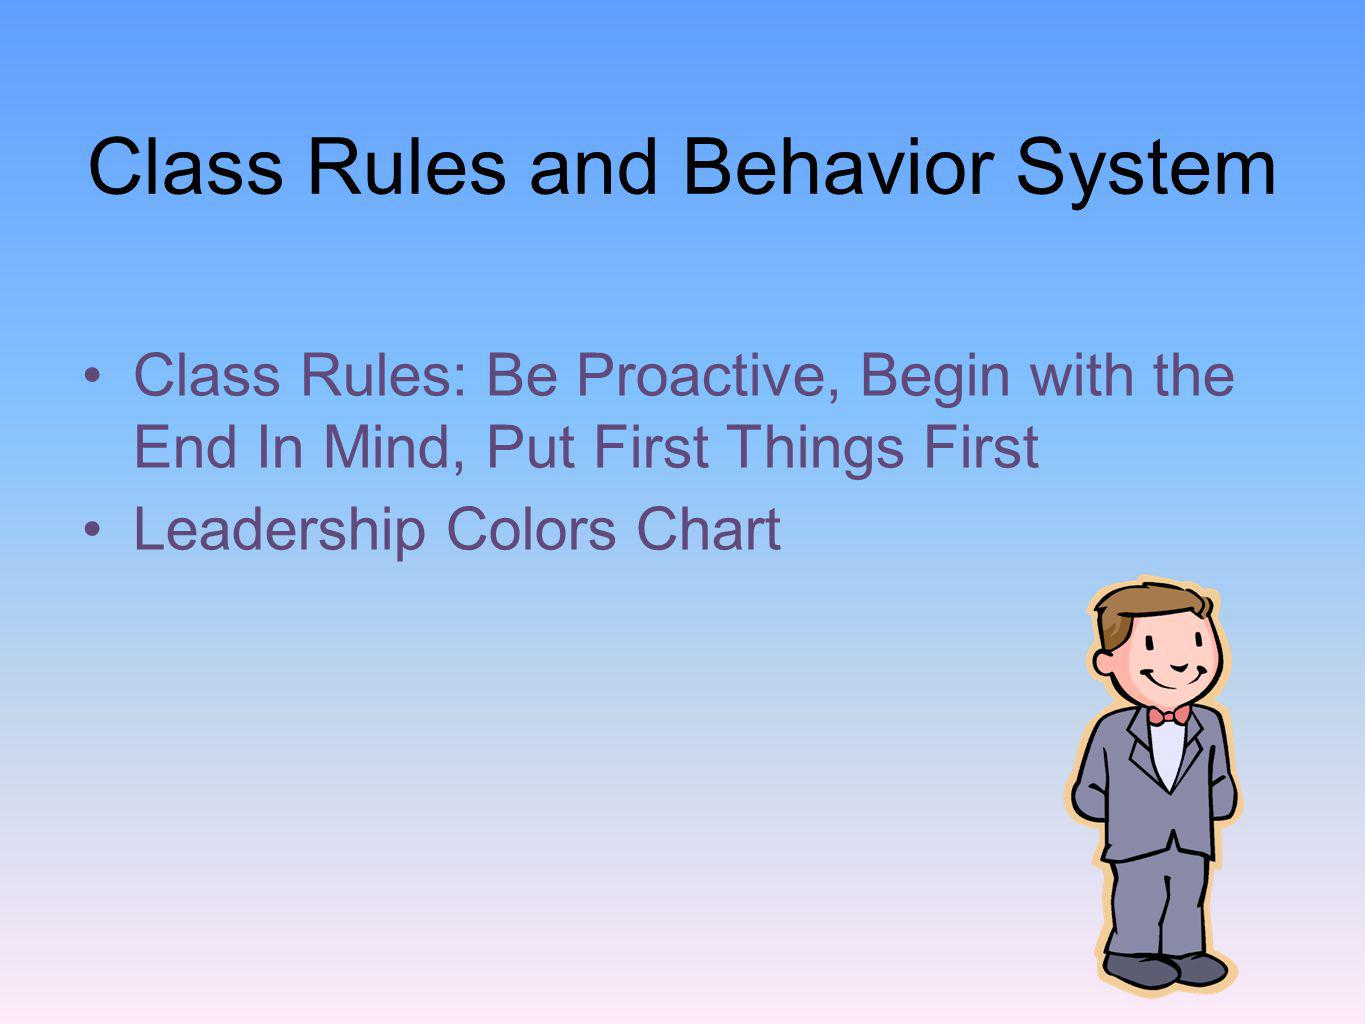 Class Rules and Behavior System